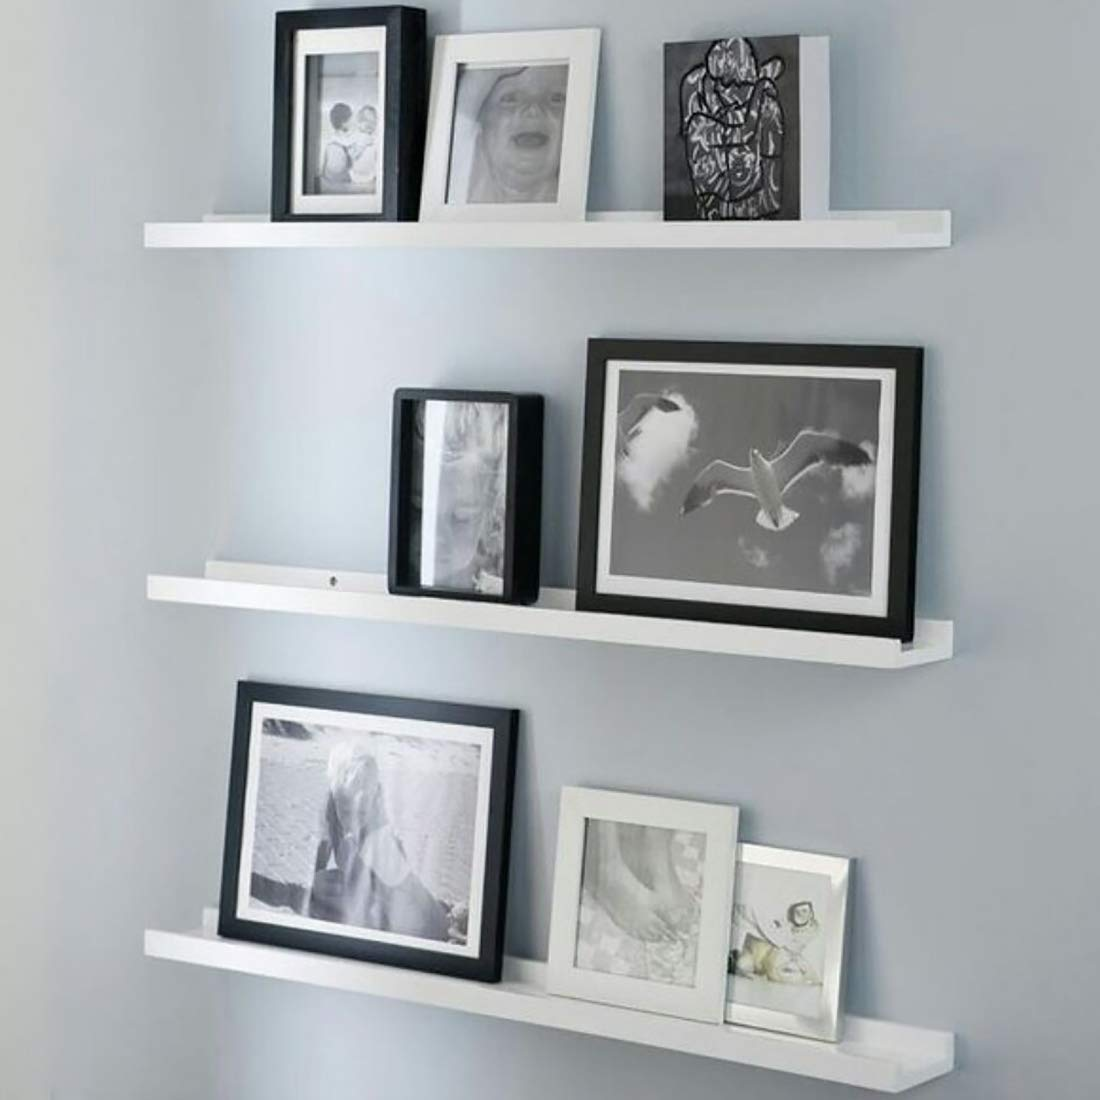 6 Pack White Wooden Lipped MULTI PURPOSE Picture Ledge Wall Shelves